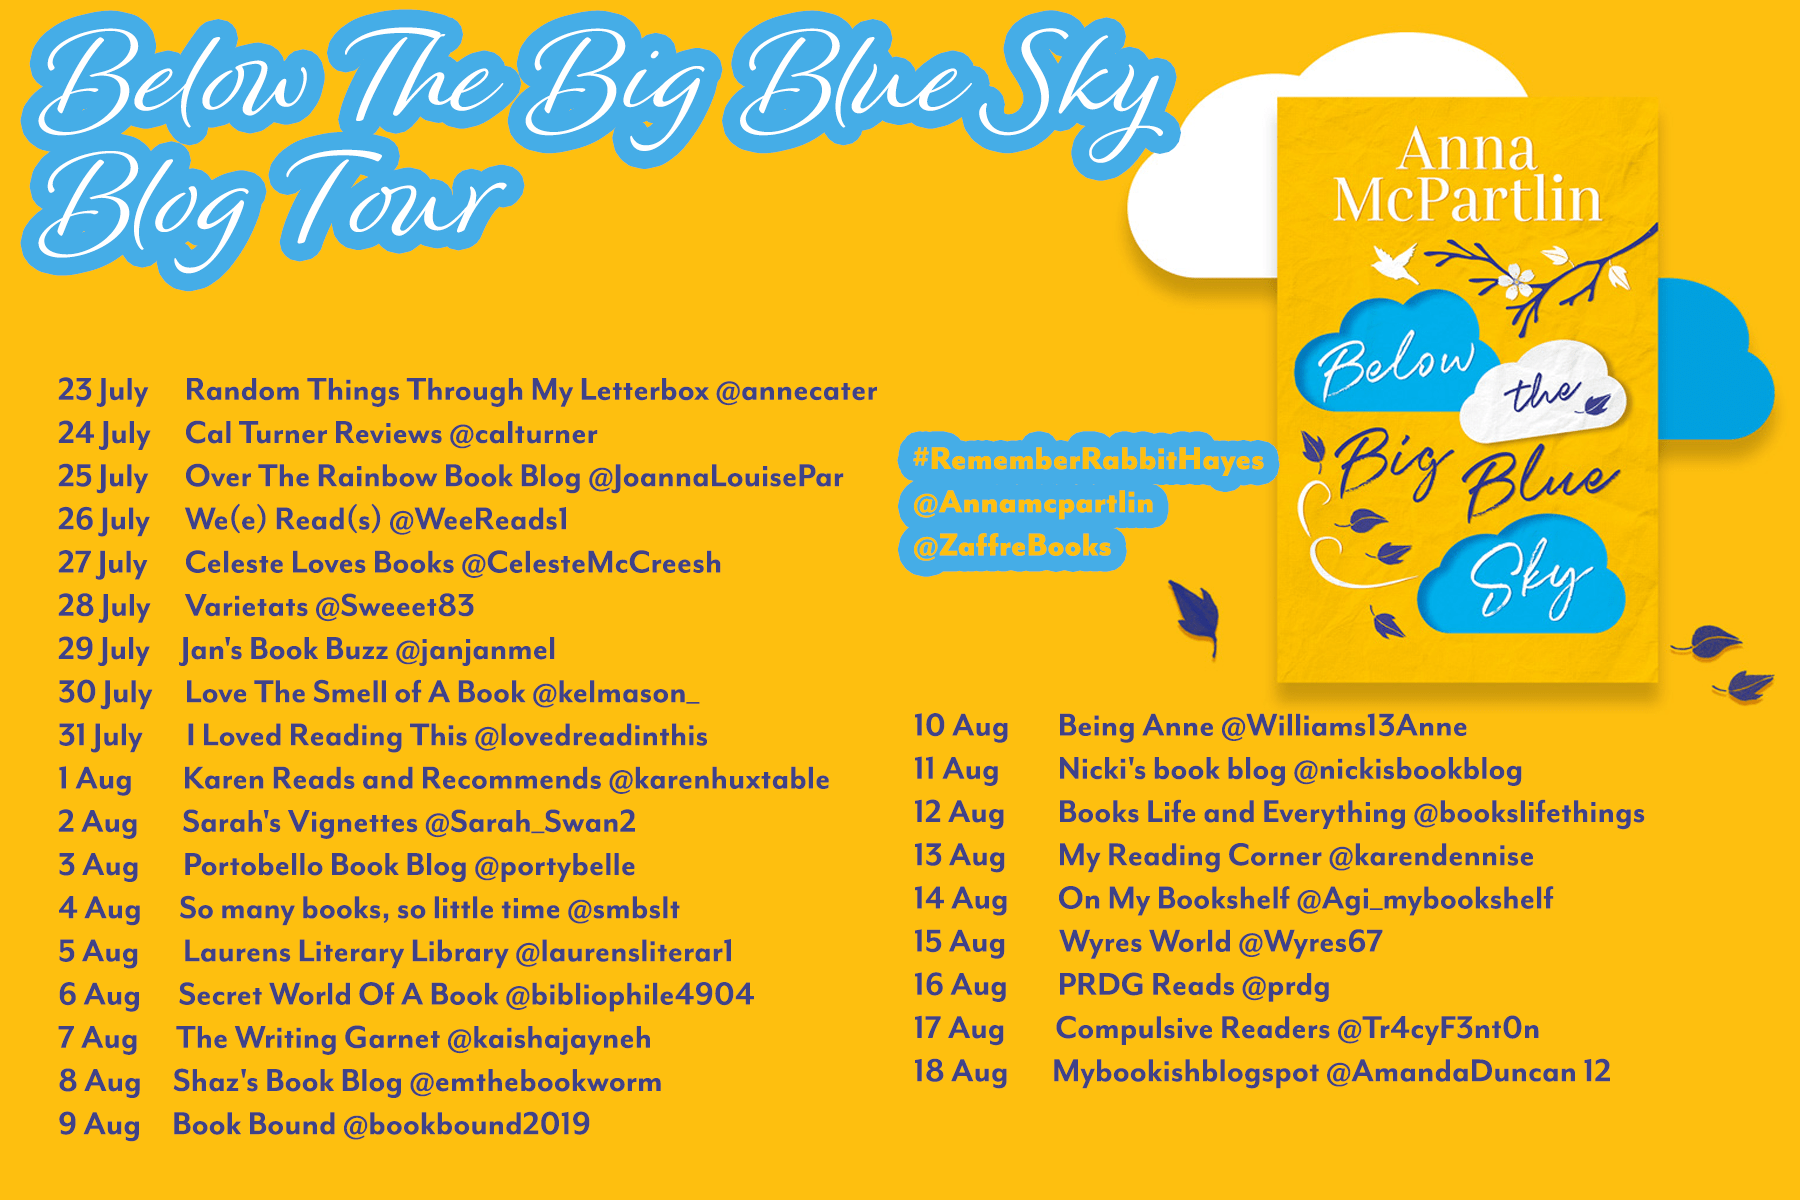 Below the Big Blue Sky – Anna McPartlin